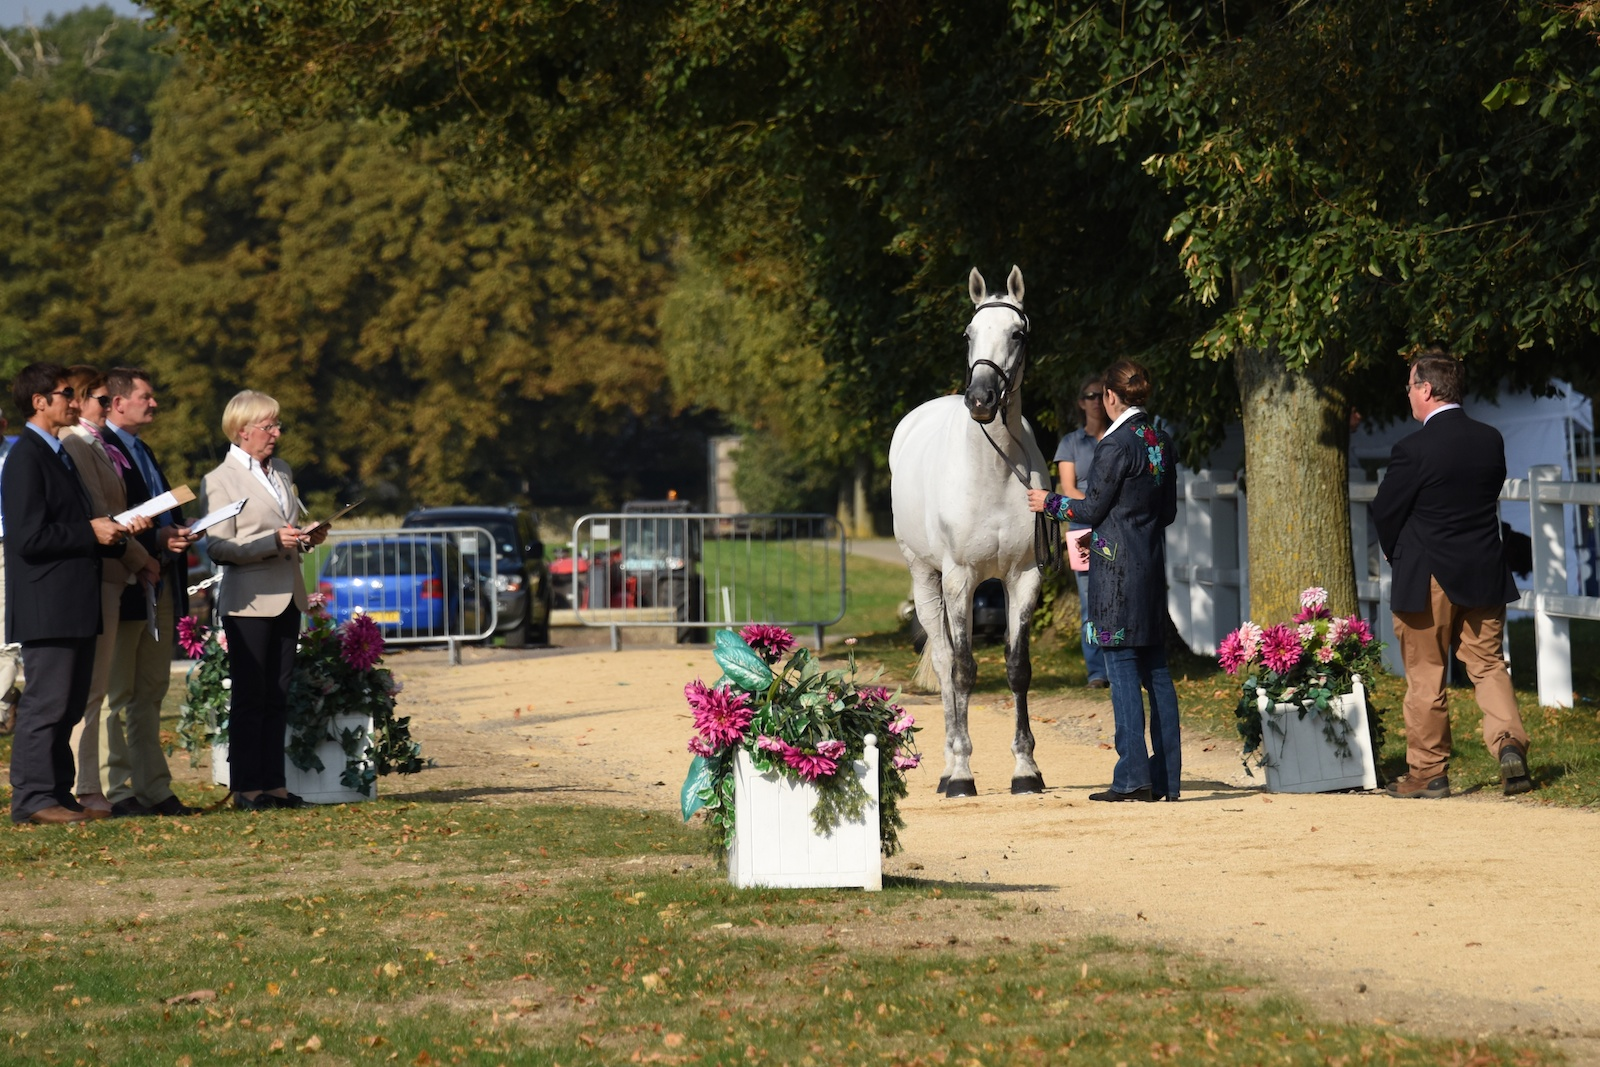 The First Horse Inspection At Blenheim International Horse Trials 2014